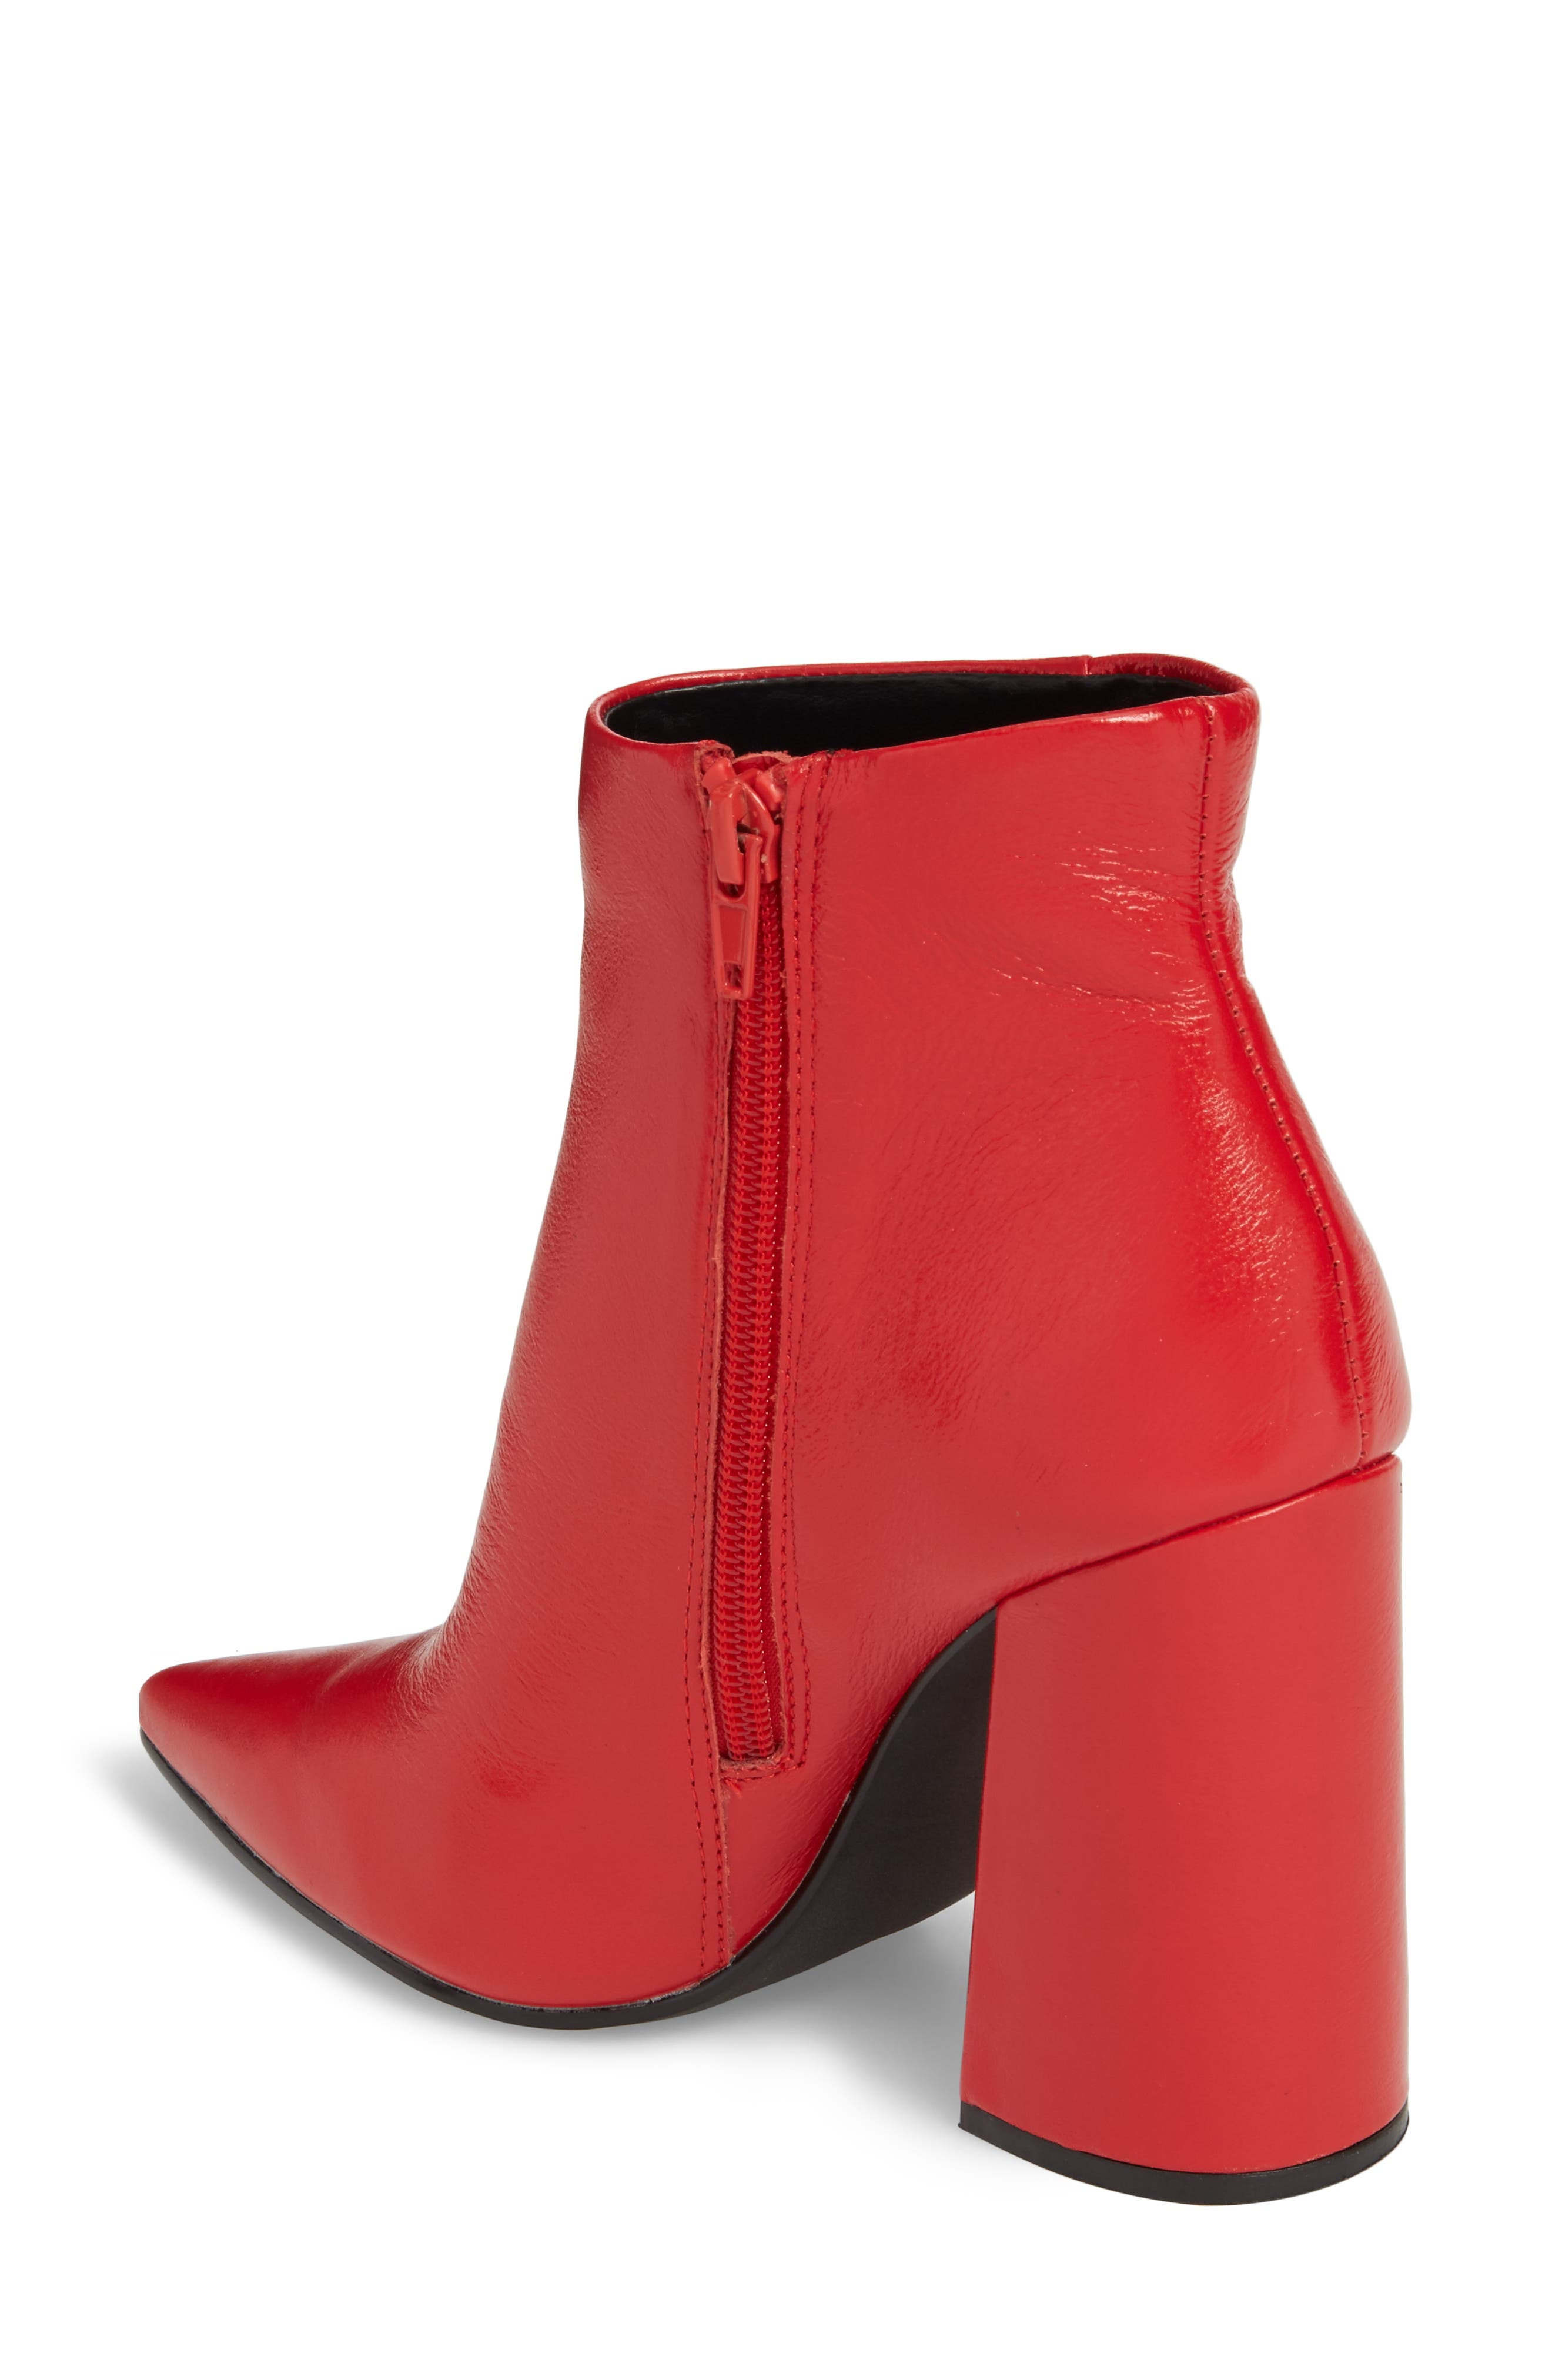 Justify Flared Heel Bootie,                             Alternate thumbnail 2, color,                             Red Leather